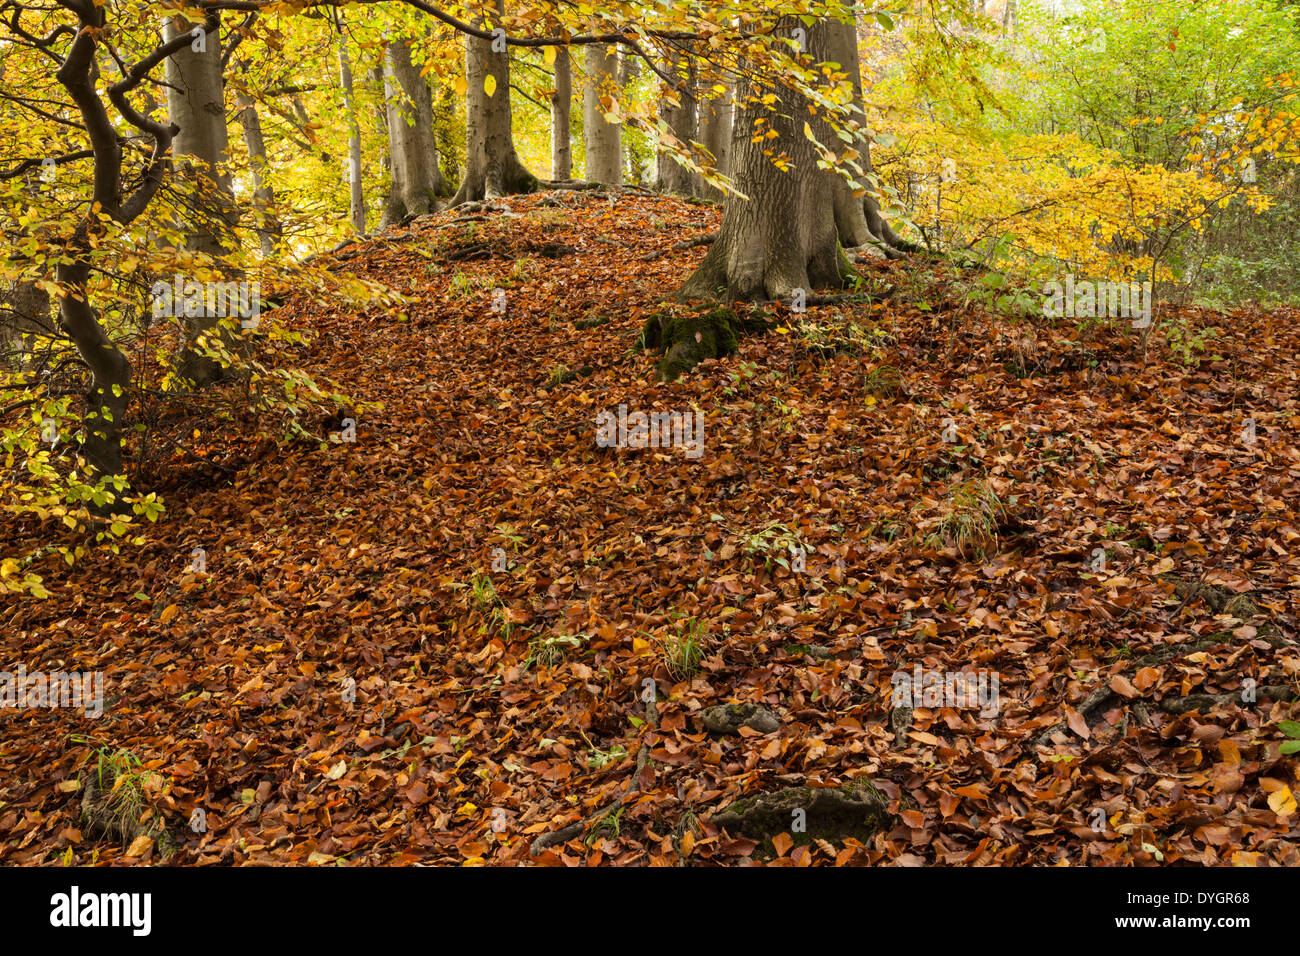 The ancient beech woodland on Sharpenhoe Clappers in autumn, part of the Chiltern Hills in Bedfordshire, England - Stock Image